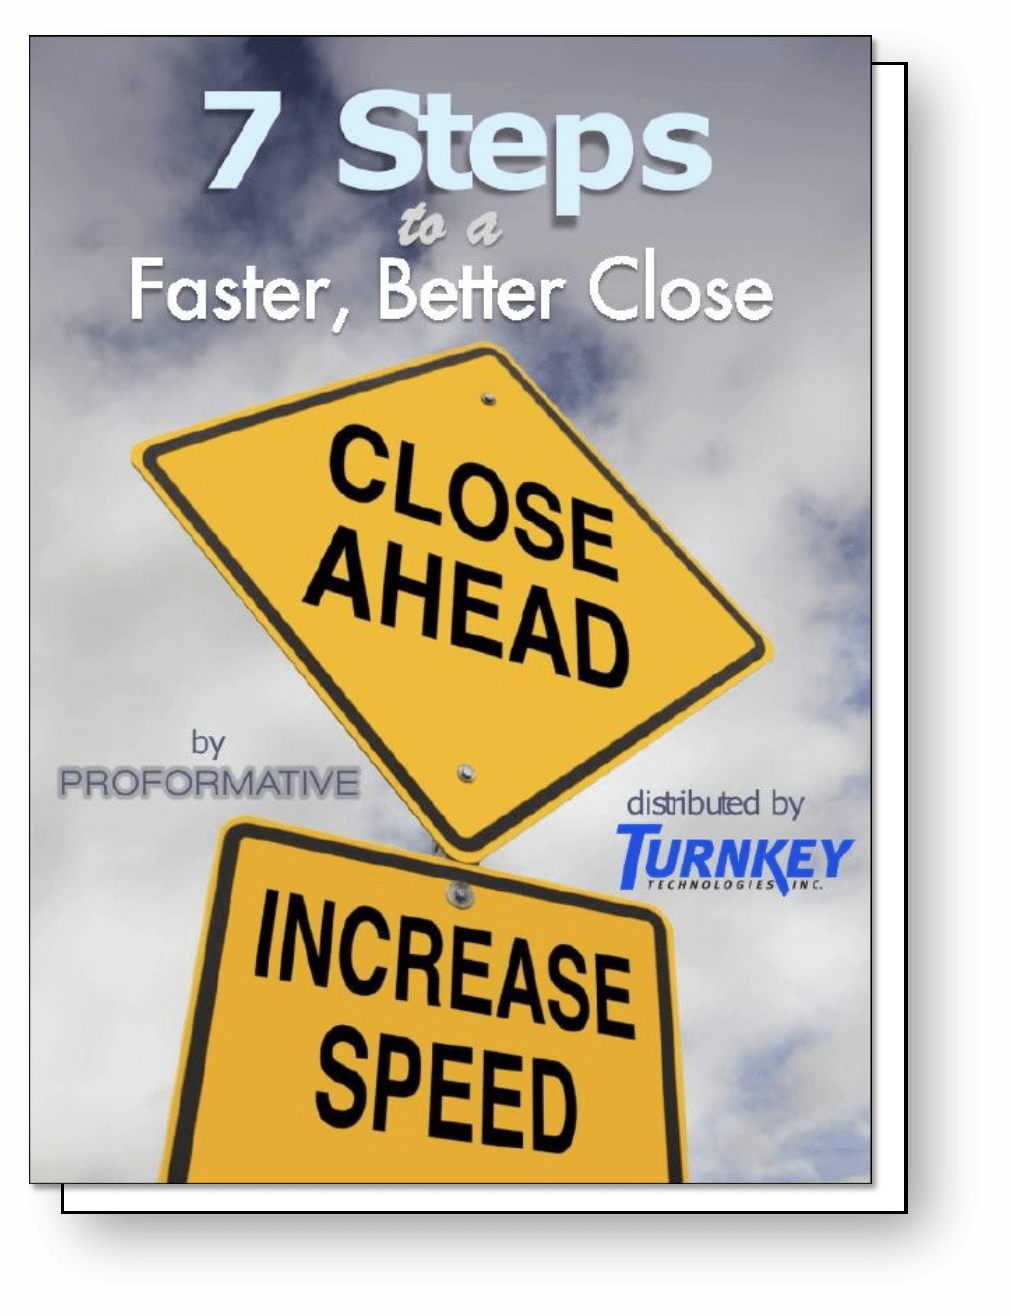 7 Steps to a Faster Close